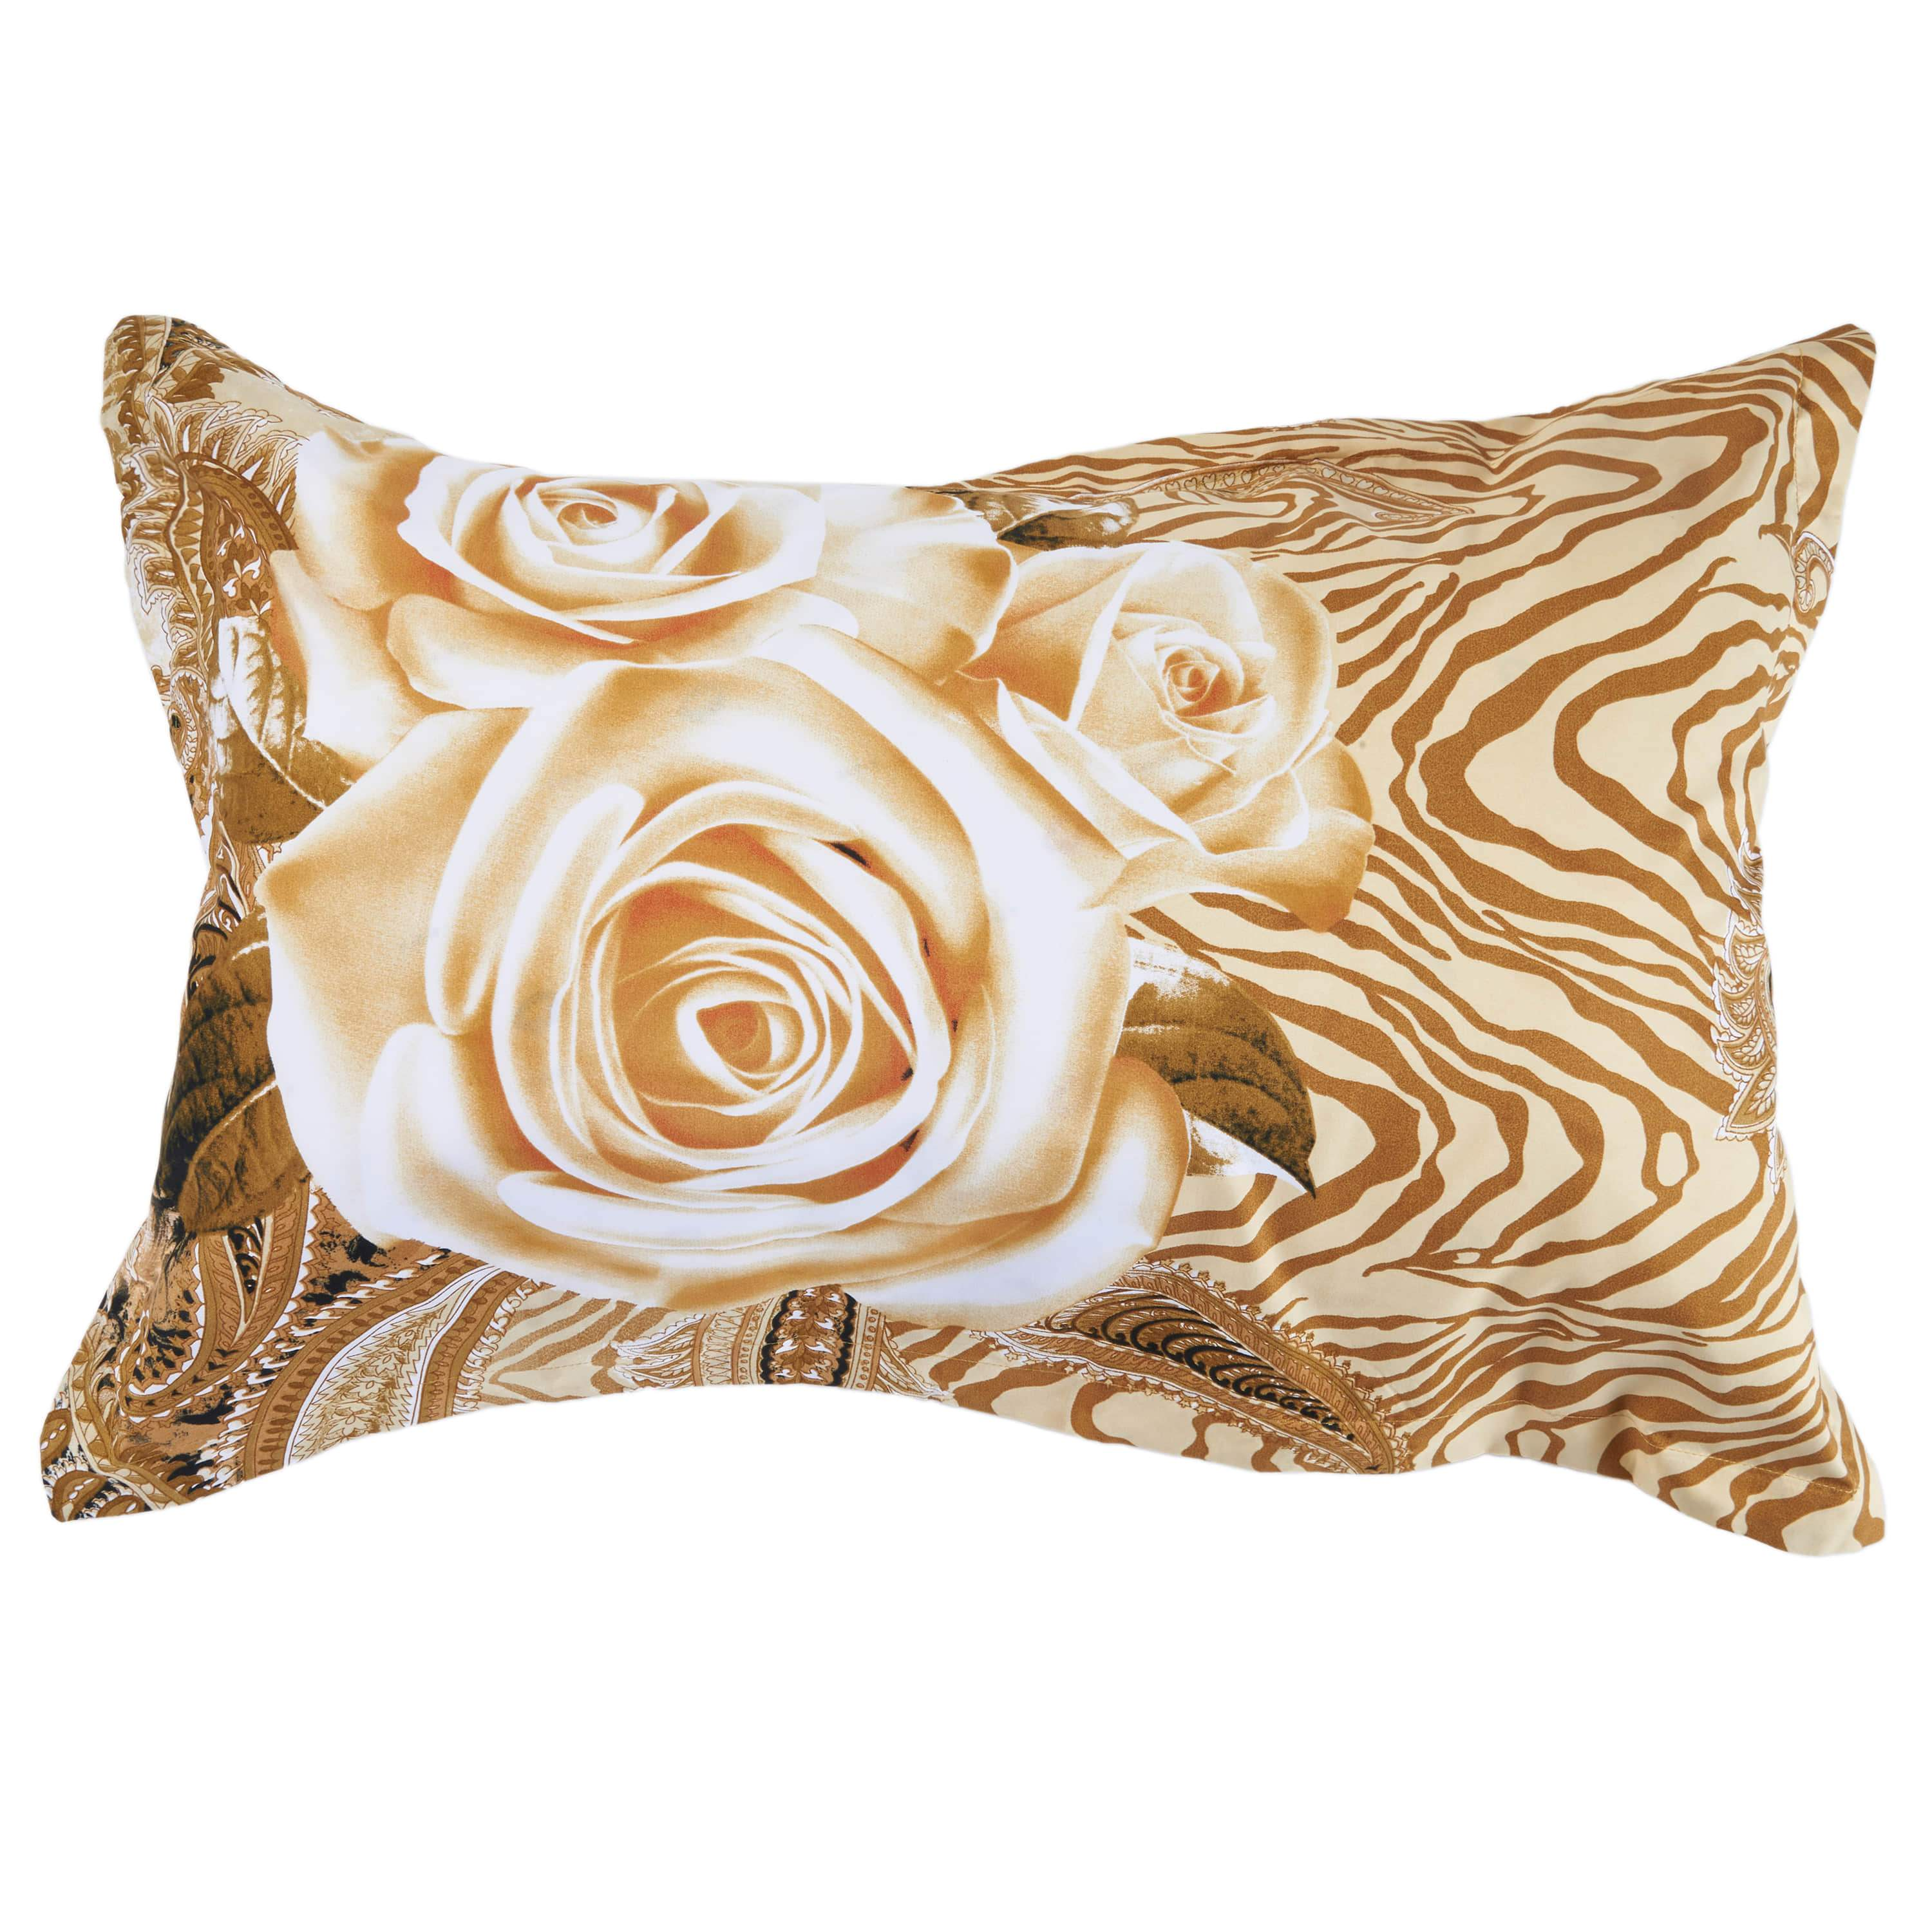 Champagne Rose Luxury Golden Rose Printing 4-Piece Duvet Cover Sets